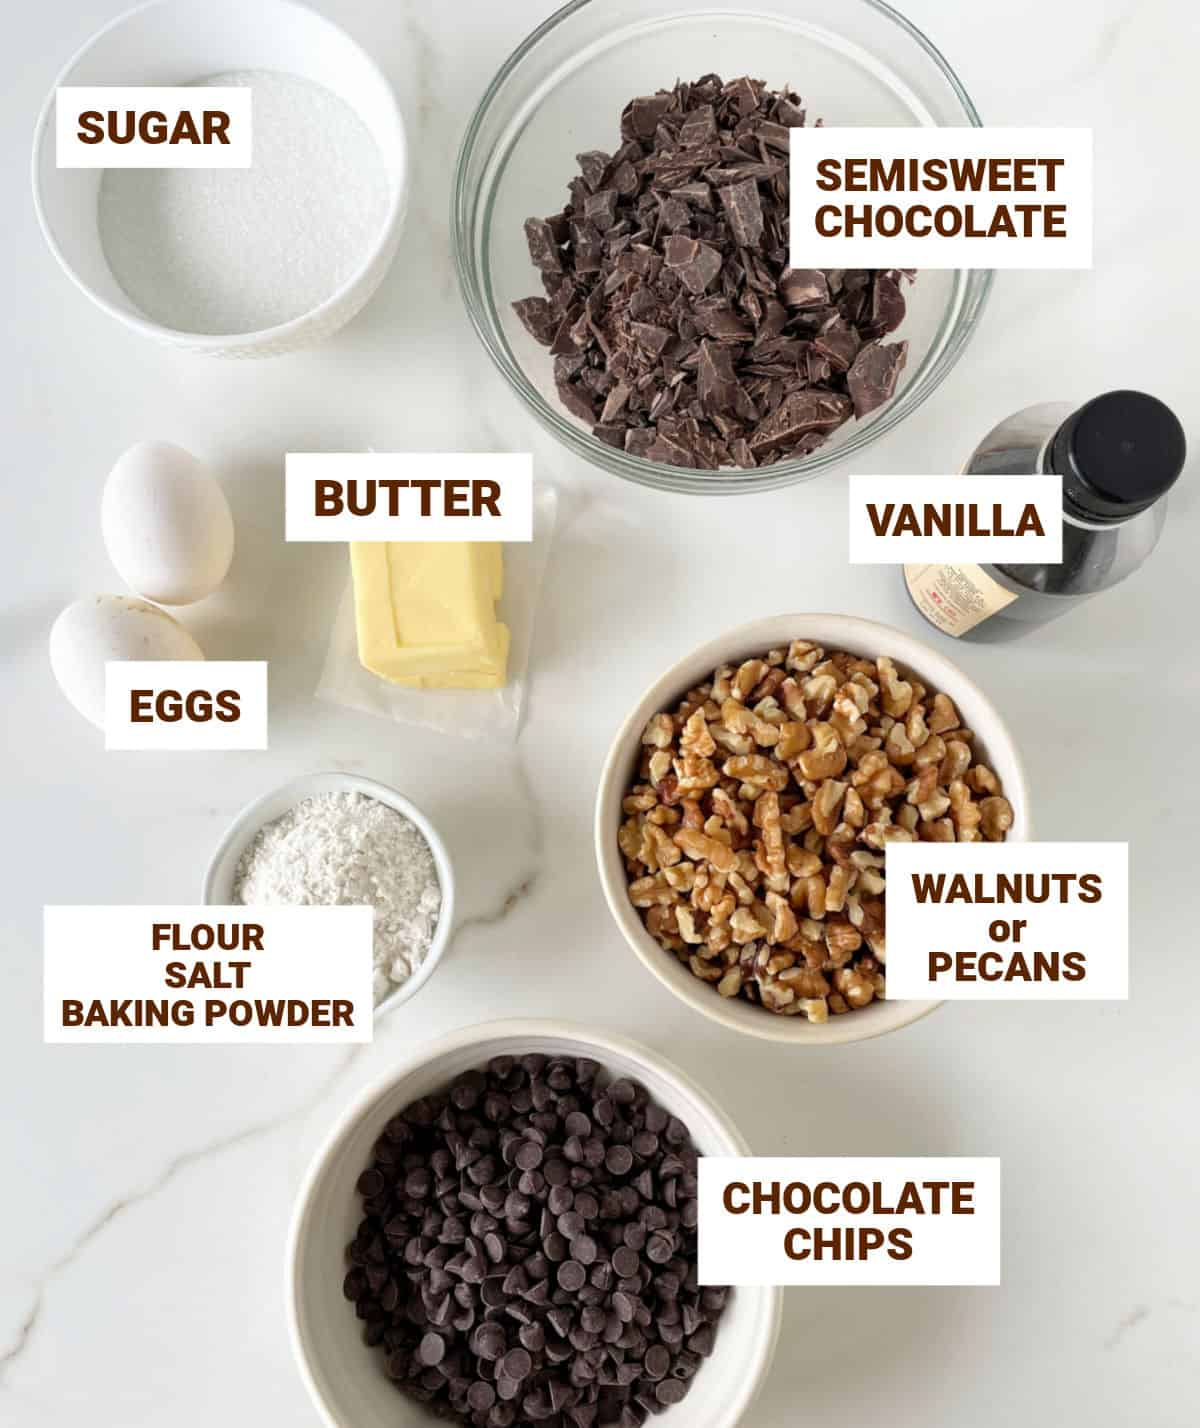 White surface with bowls containing ingredients for chocolate walnut cookies including butter, eggs, chopped chocolate and chips, vanilla